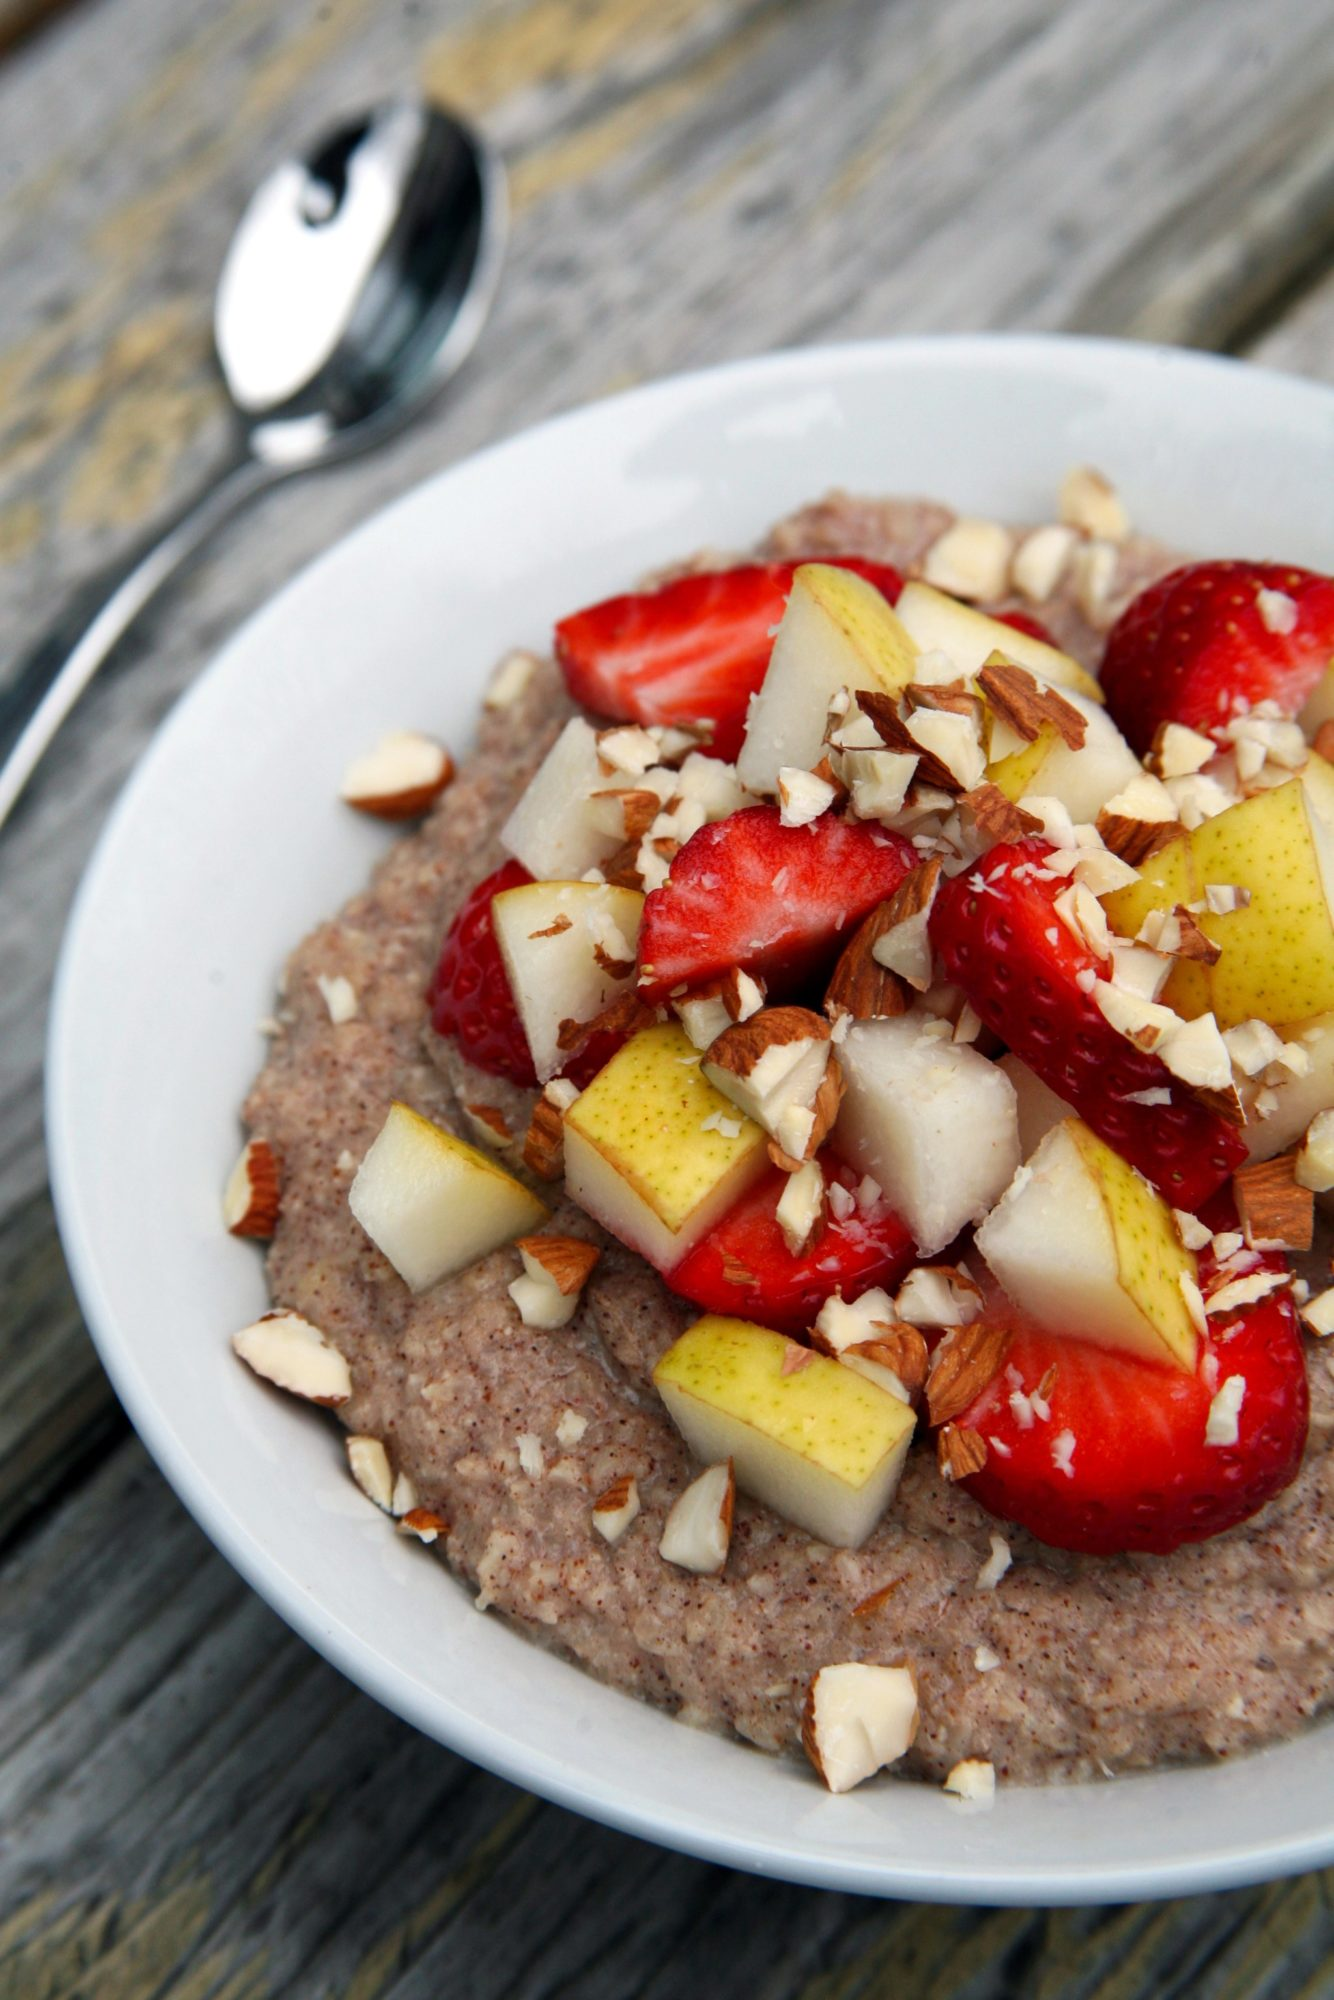 Cinnamon Cauliflower Oatmeal with Almond Butter, Strawberries and Pears